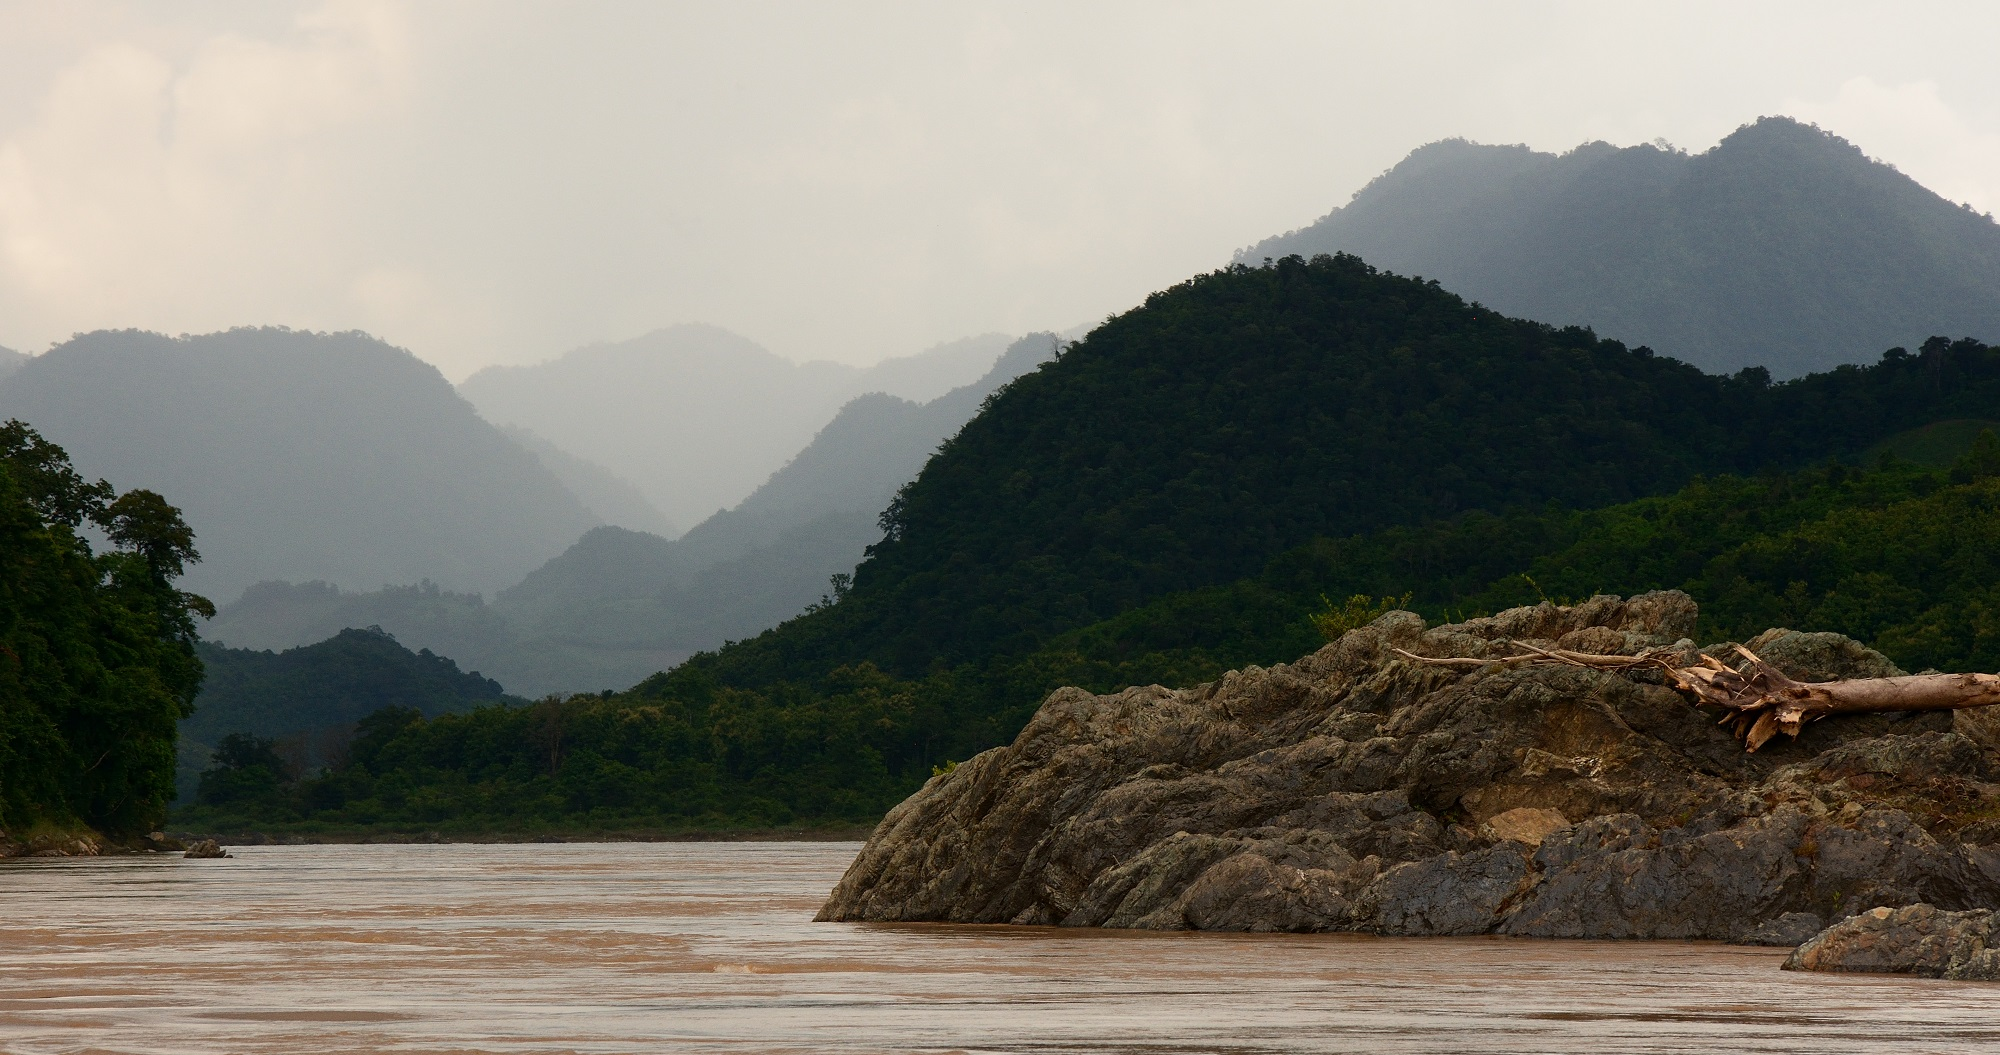 Undulating hills by the Mekong